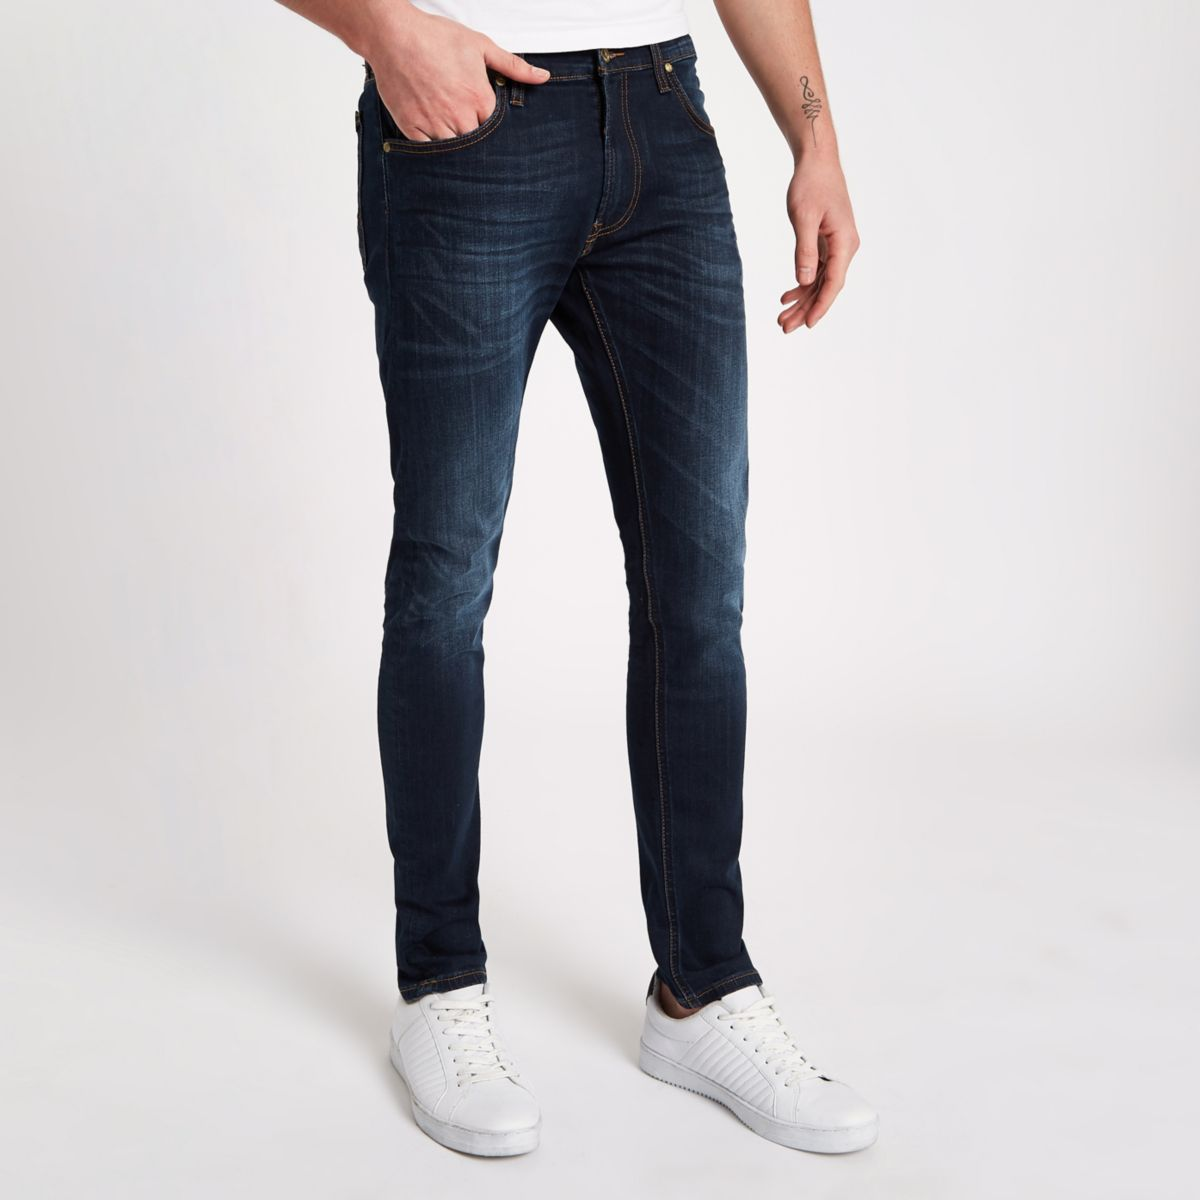 Lee blue slim fit tapered jeans